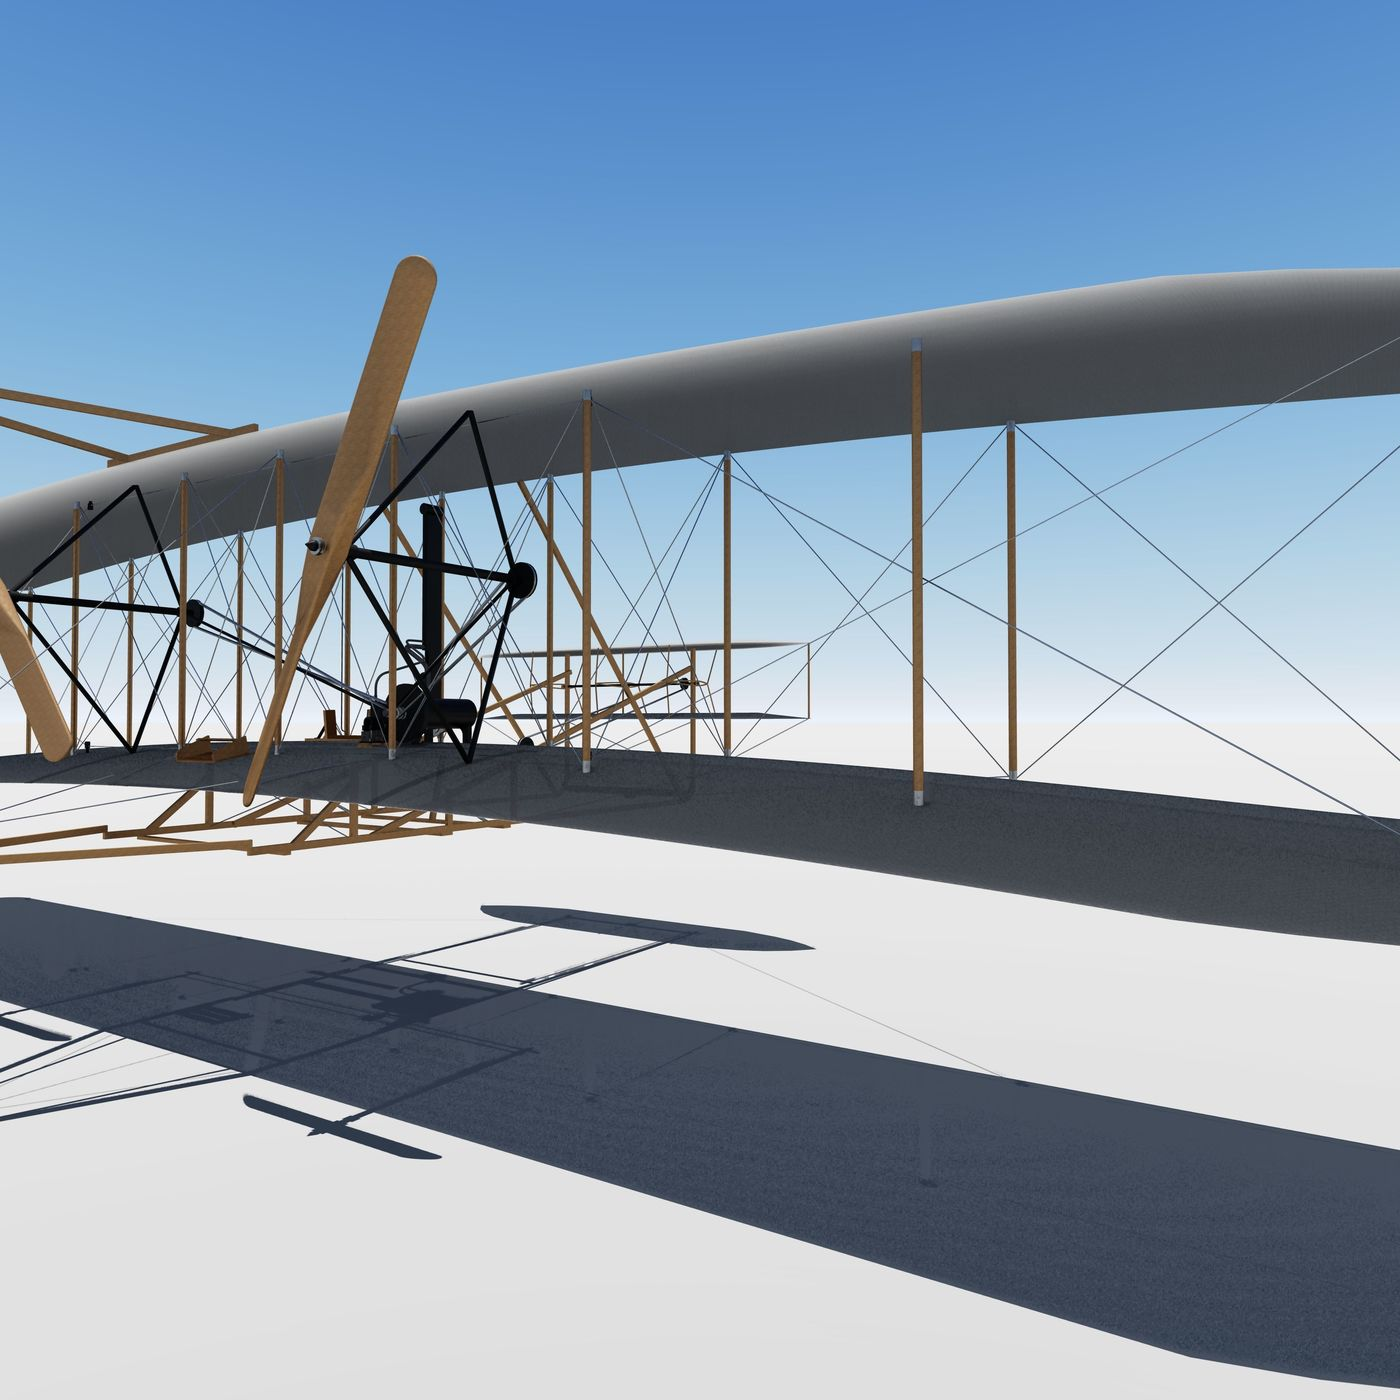 The Wright Flyer